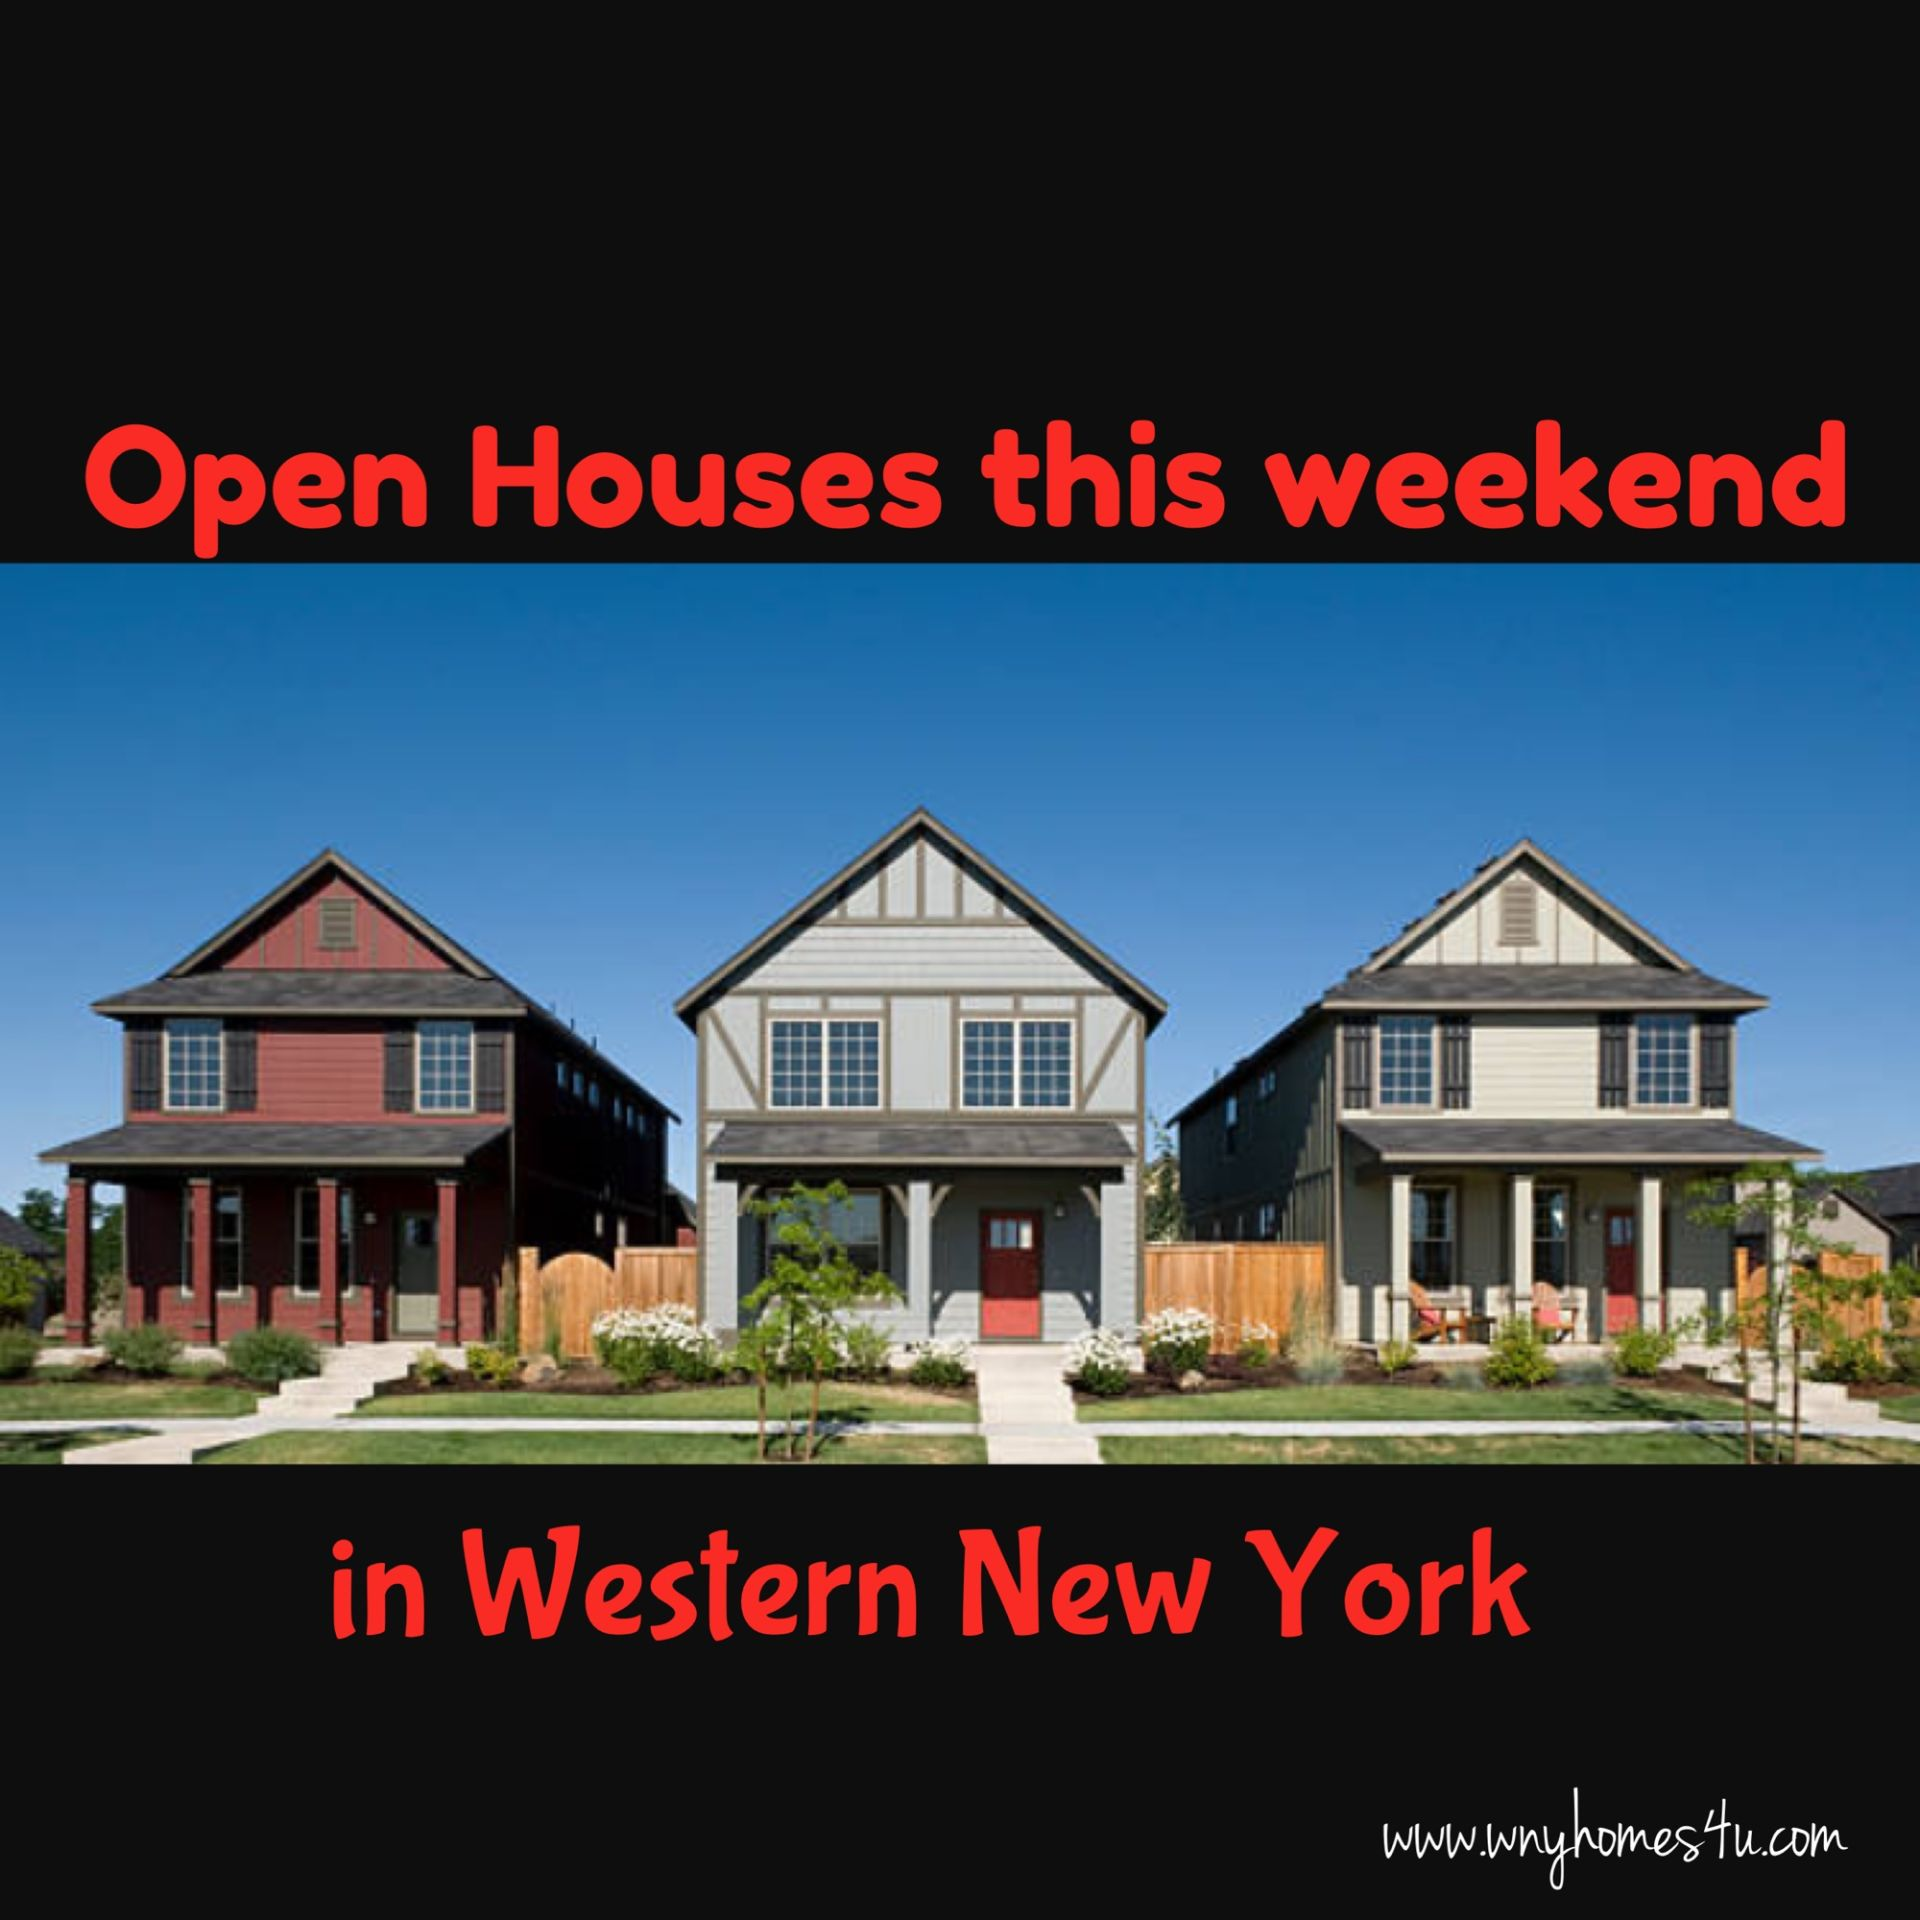 Open Houses Oct 28/29 in Western New York